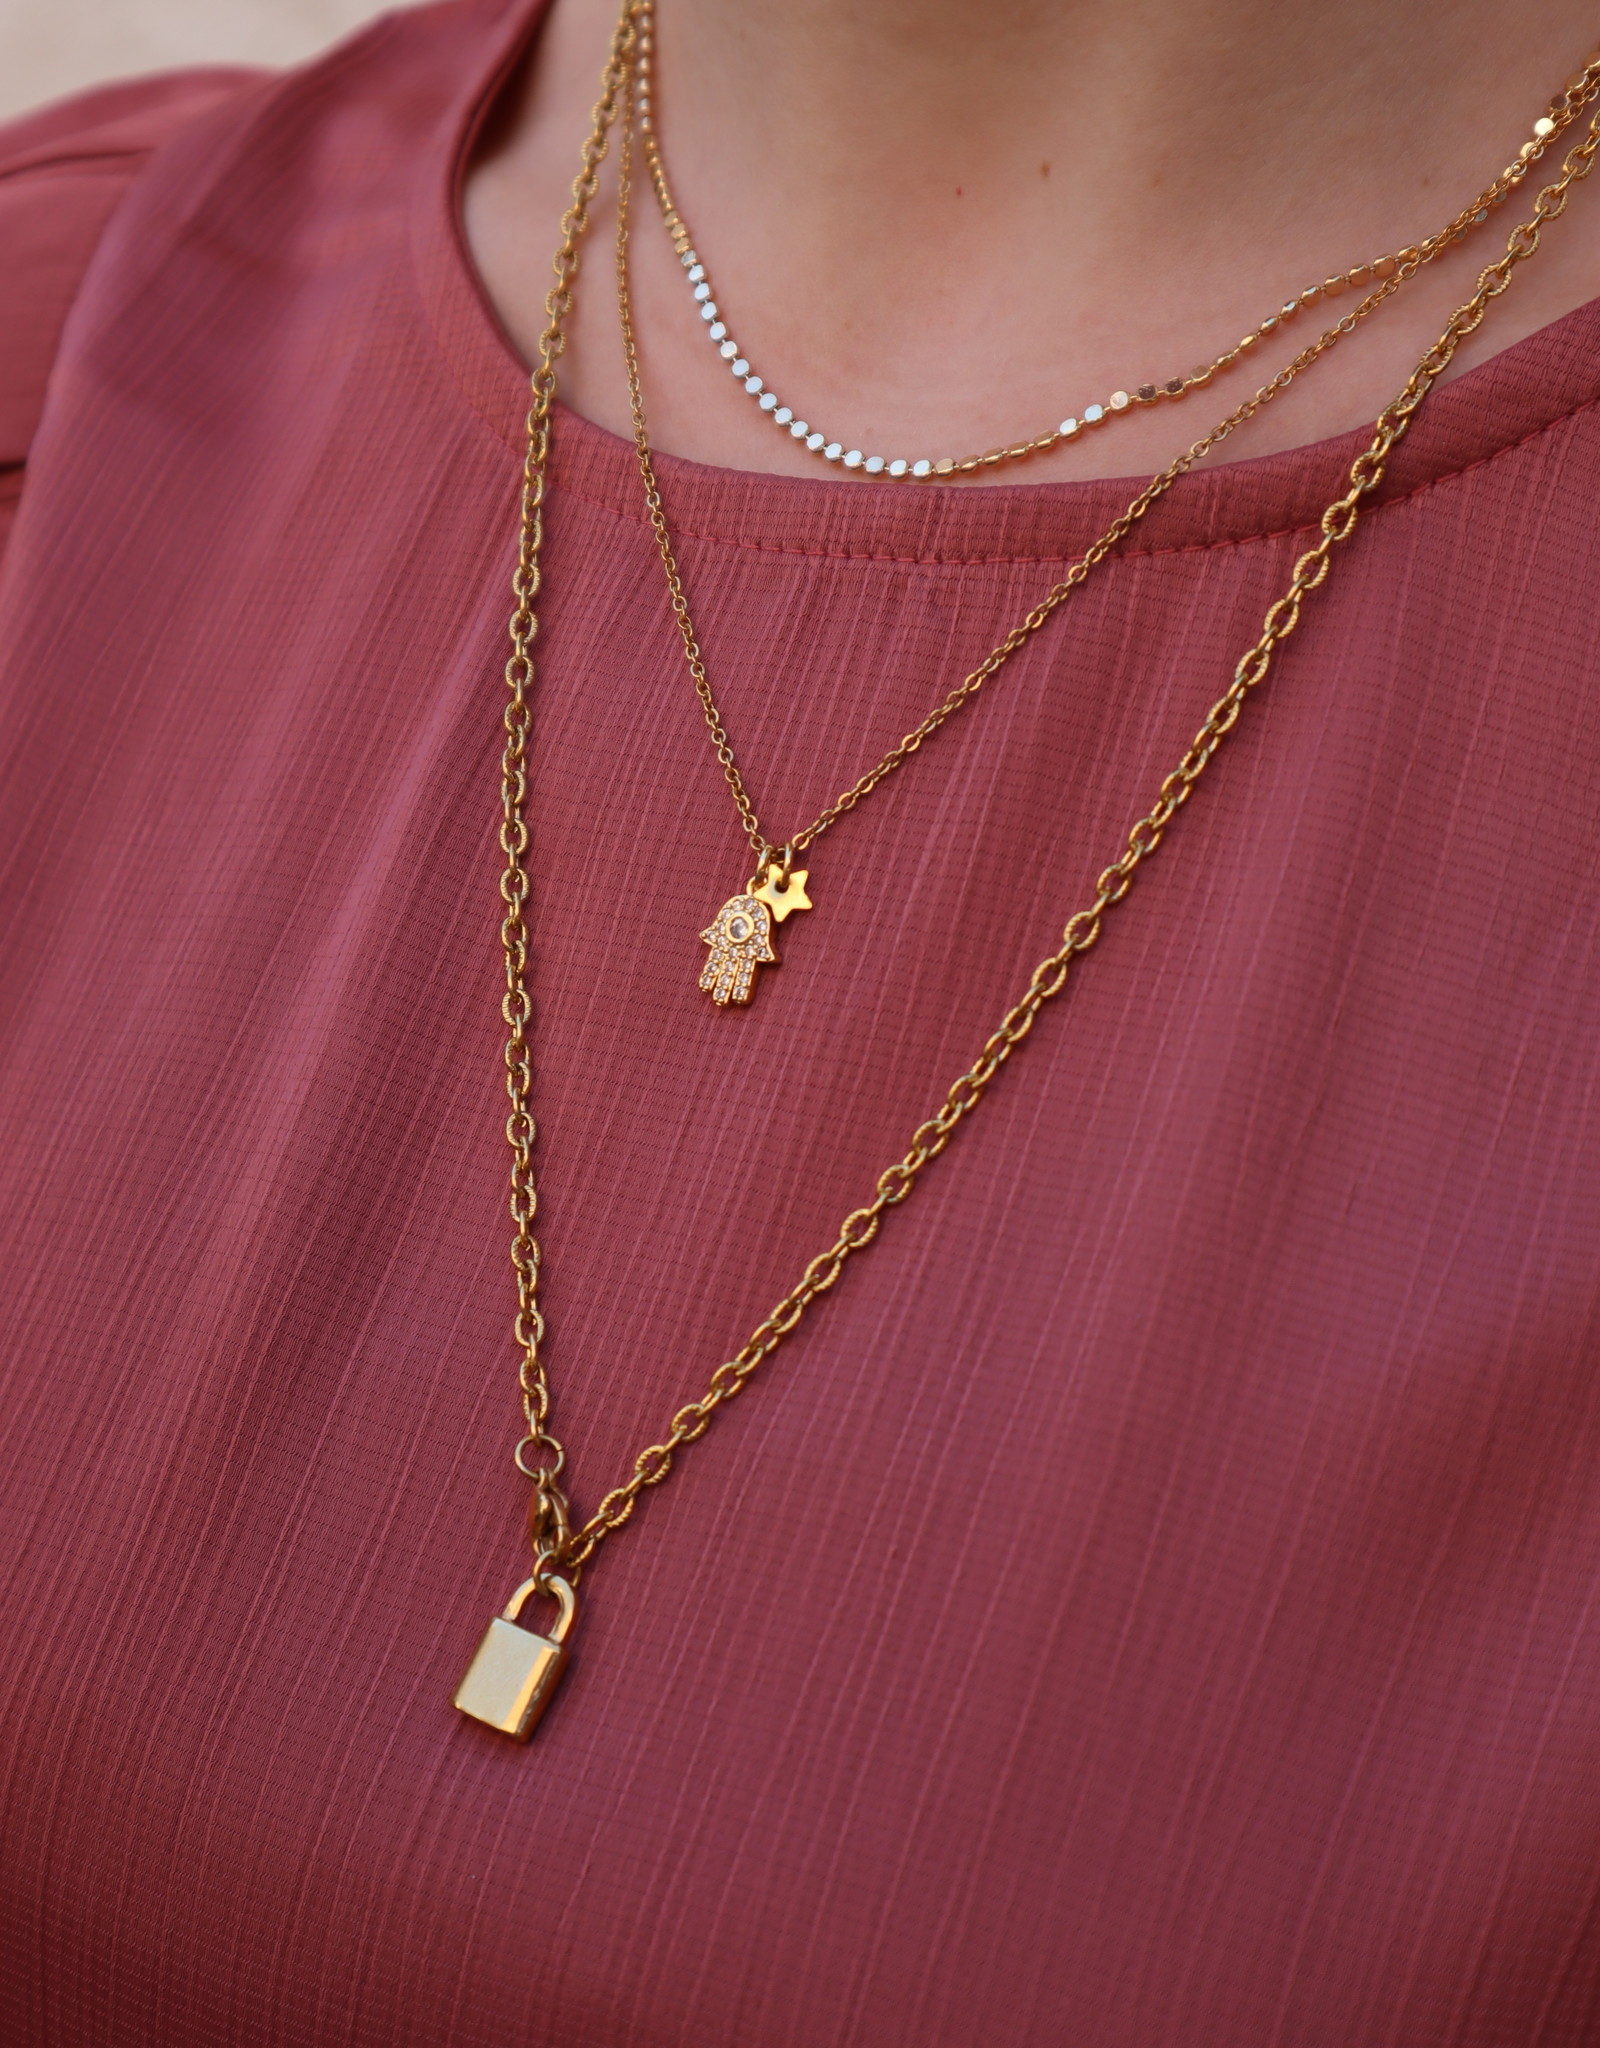 2 The Moon 'n Back 2 The Moon 'n Back Necklace Golden Bling Hand & Star